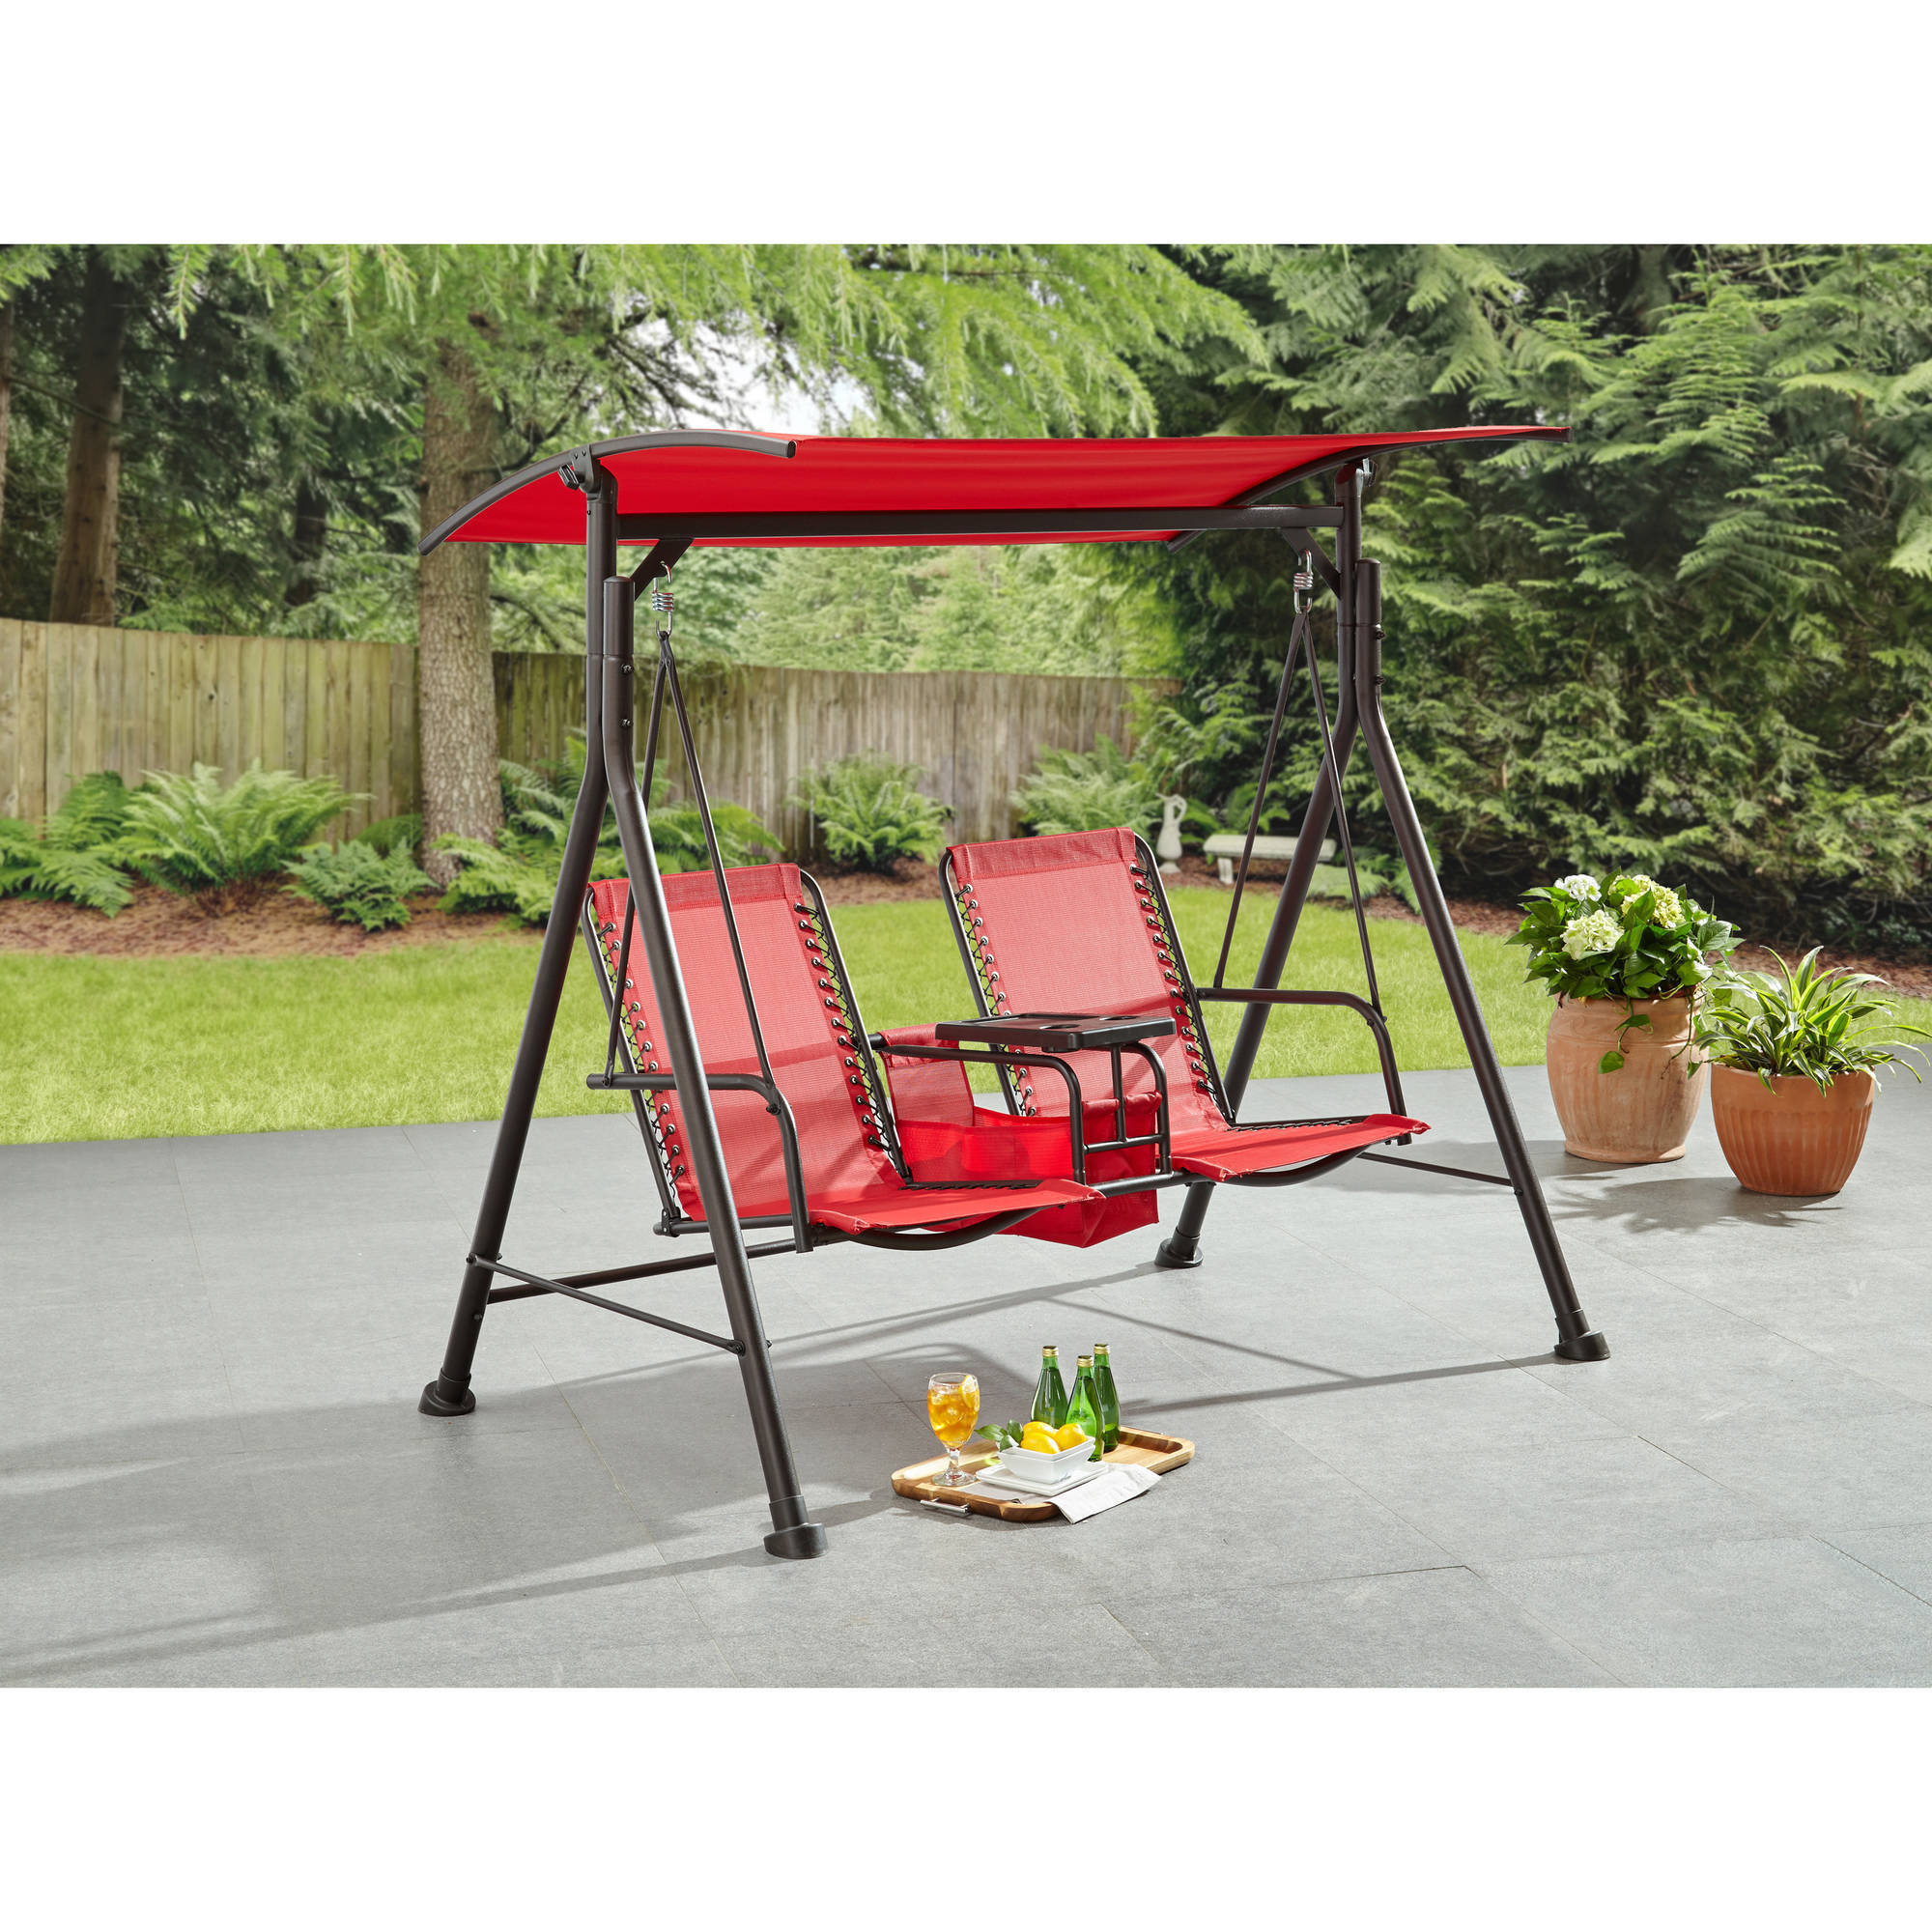 Mainstays Big And Tall 2 Person Bungee Canopy Porch Swing – Walmart Pertaining To Latest Canopy Porch Swings (Gallery 12 of 25)